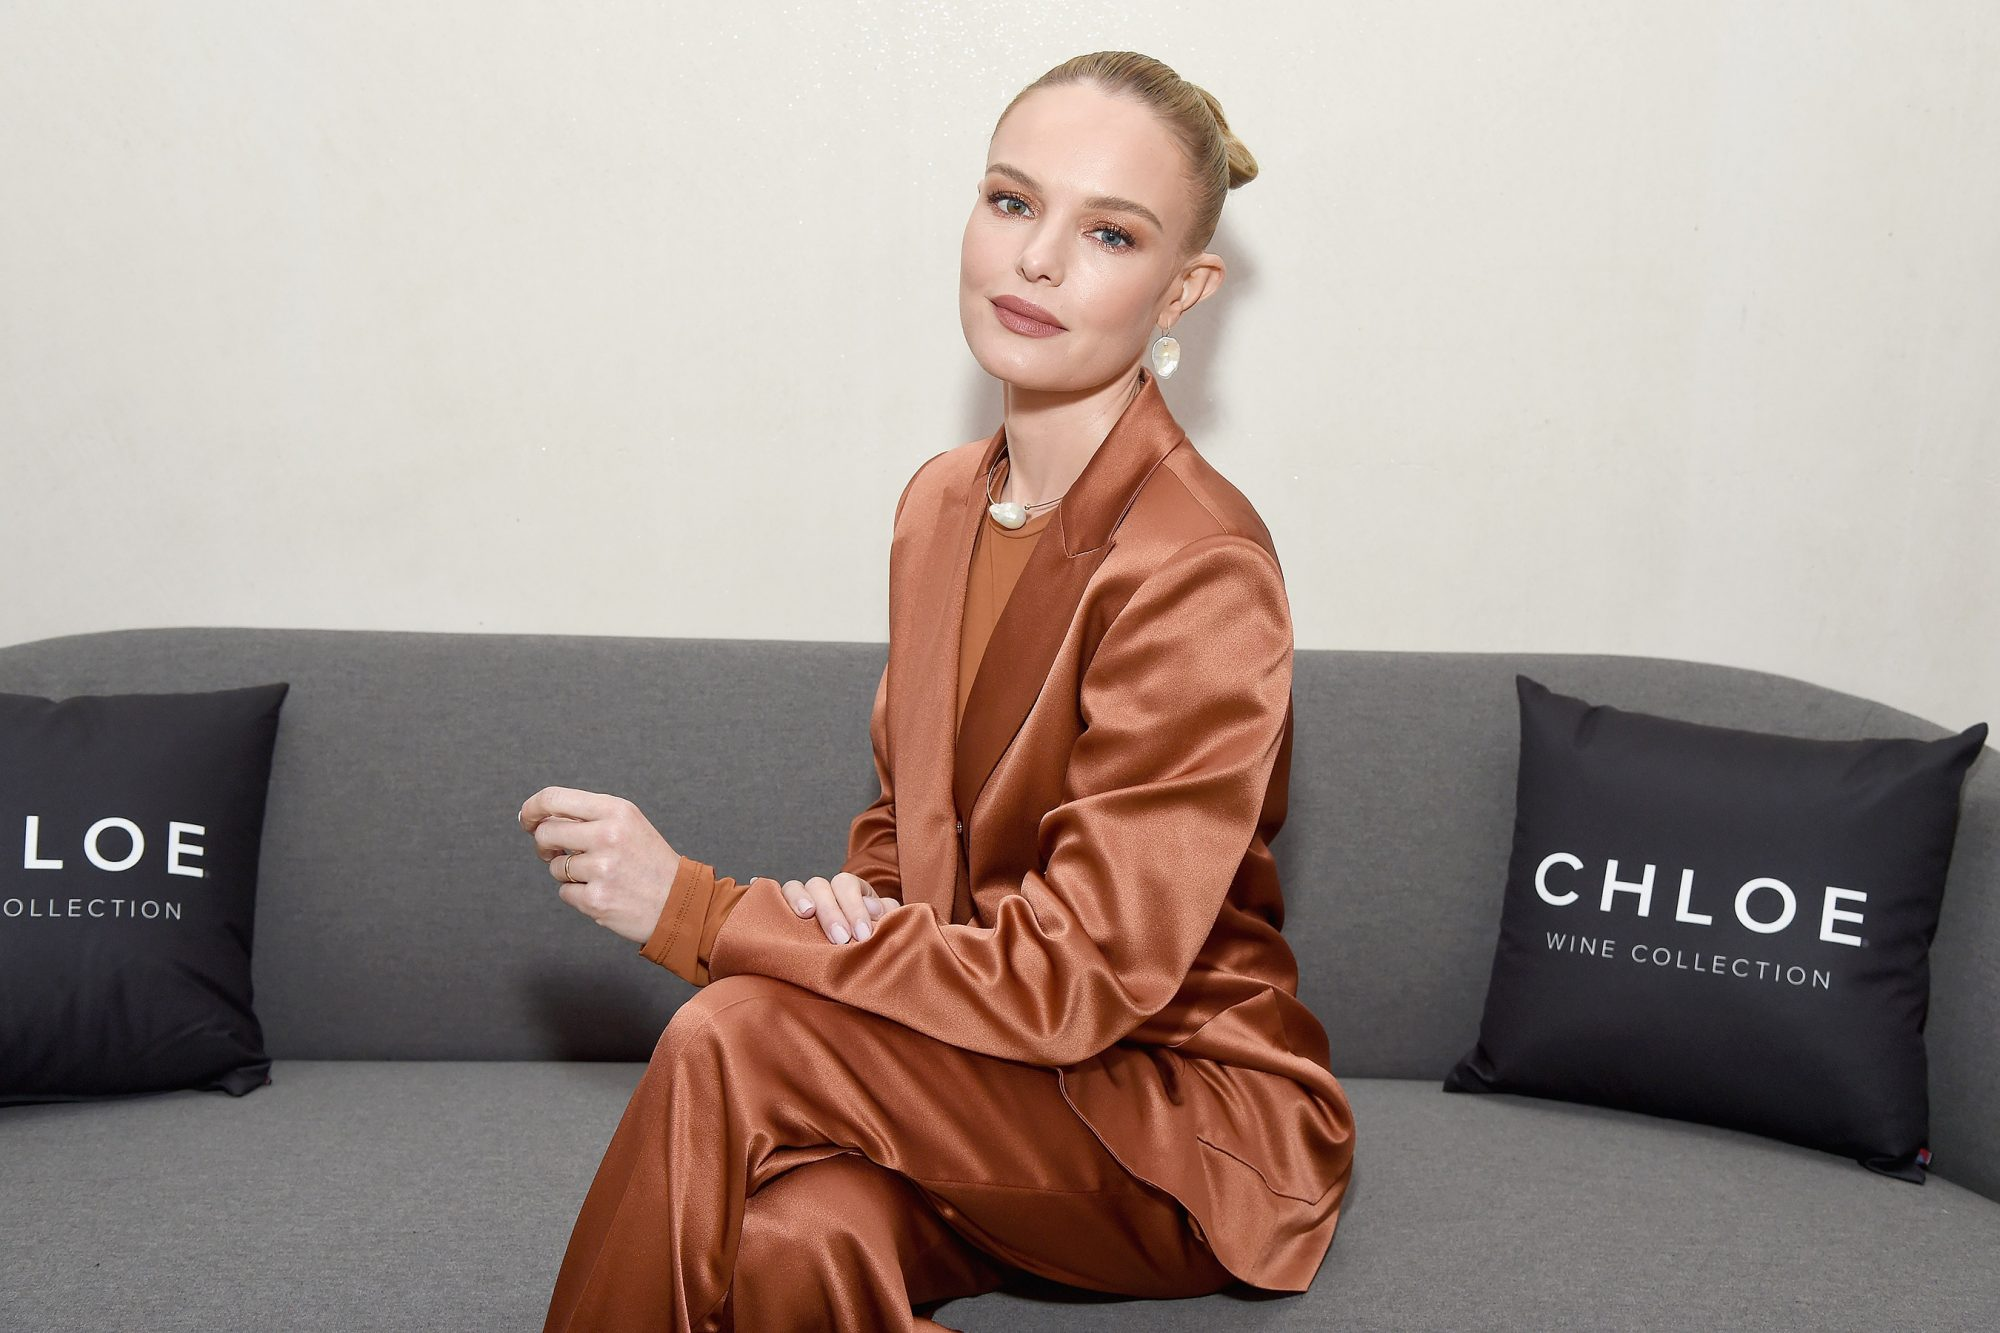 Chloe Wine Collection Launches Its She Directed Campaign At The 12th Annual Women In Film Oscar Nominees Party